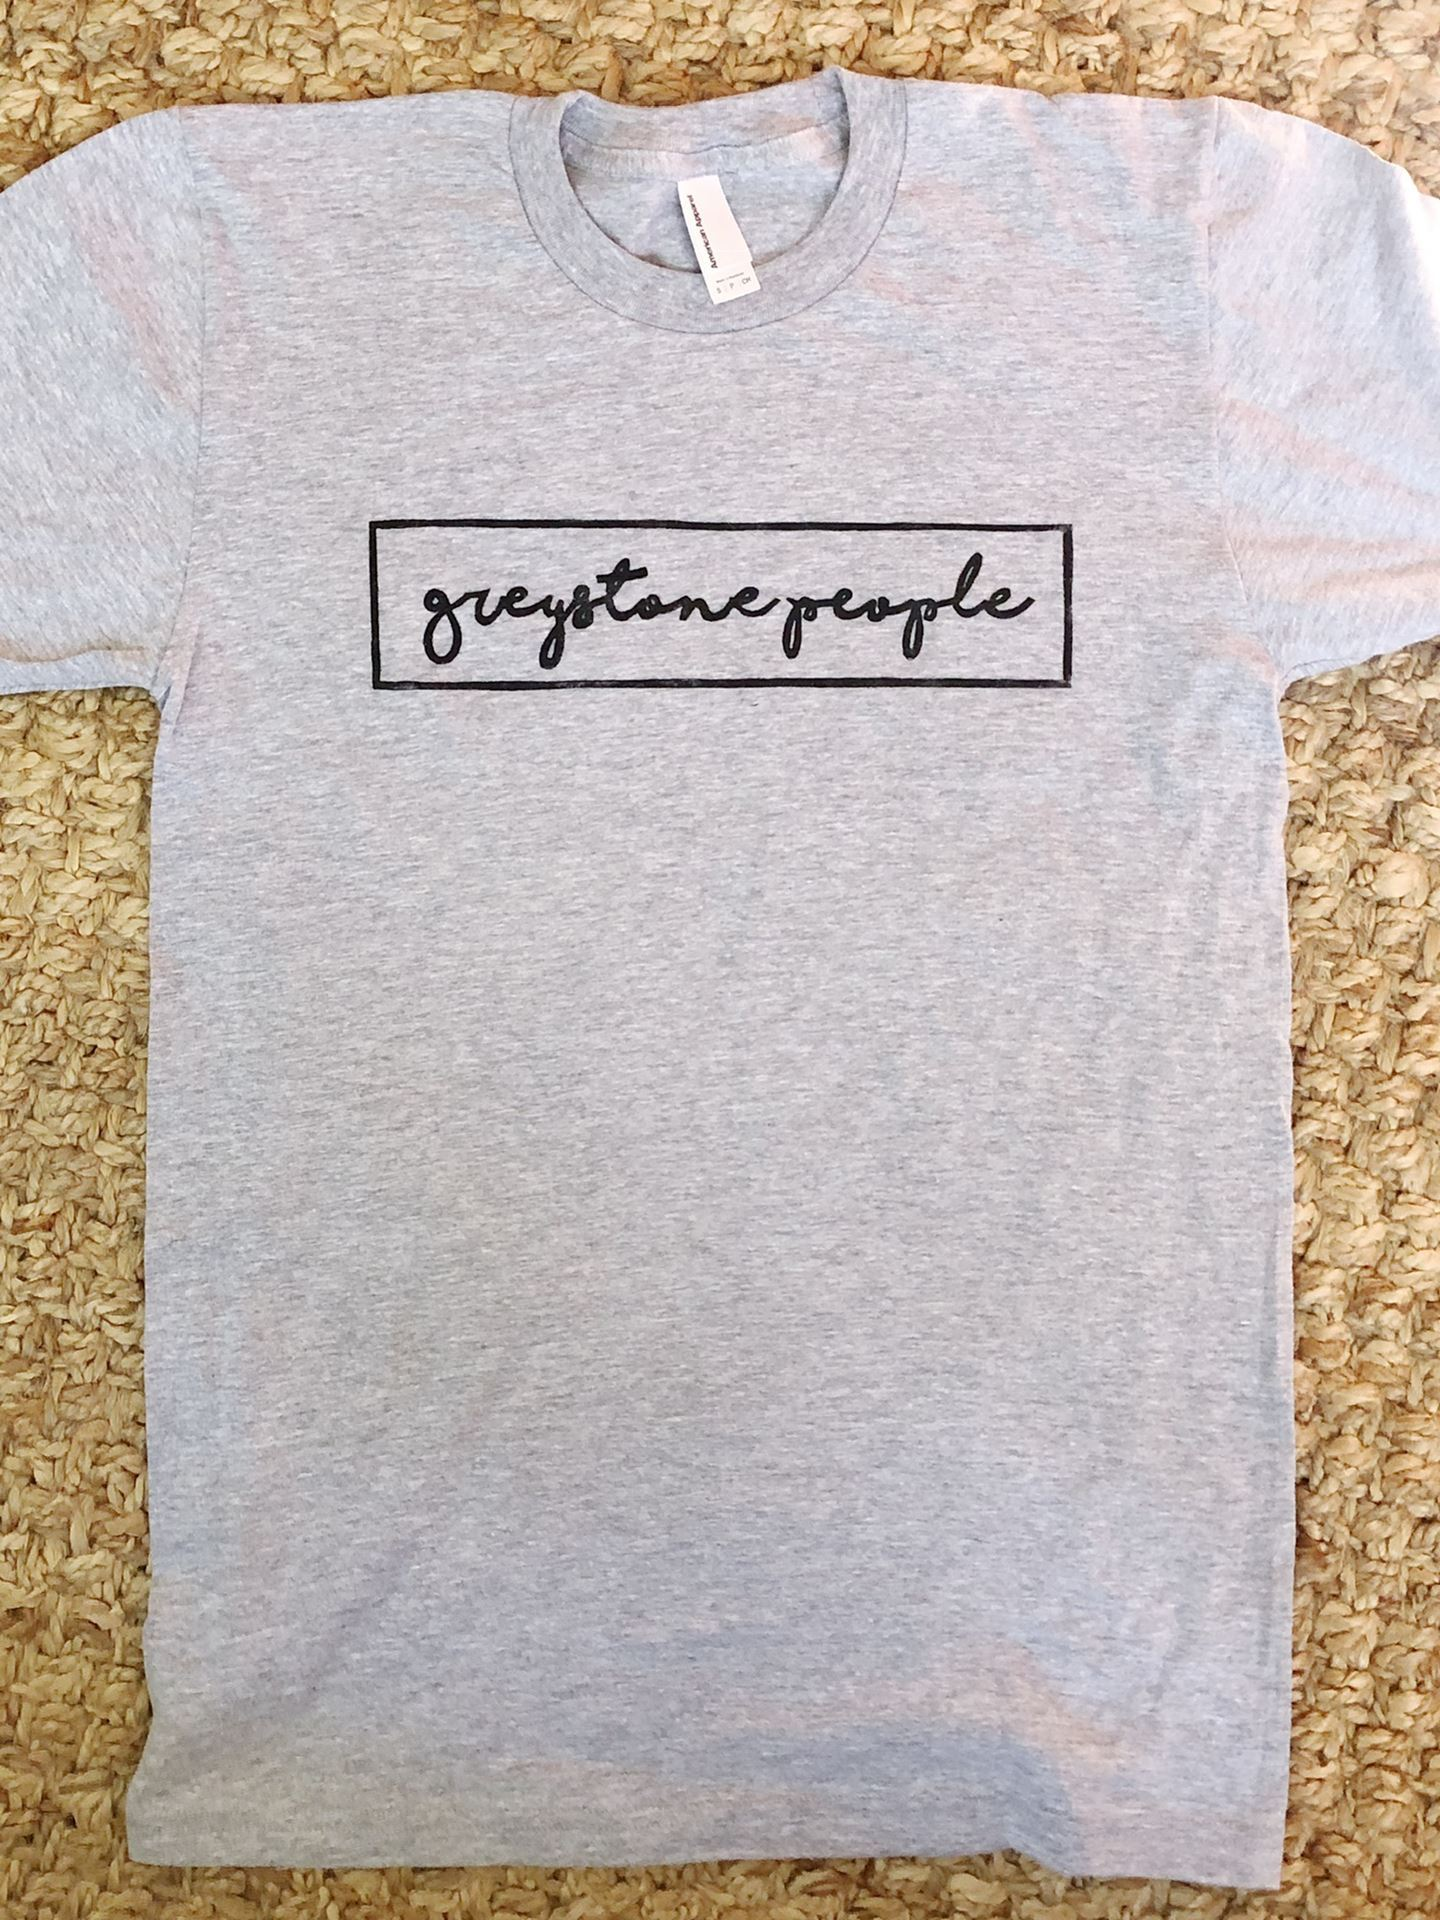 Picture of Greystone People Hand-Printed Gray Shirt - Adult Small Only